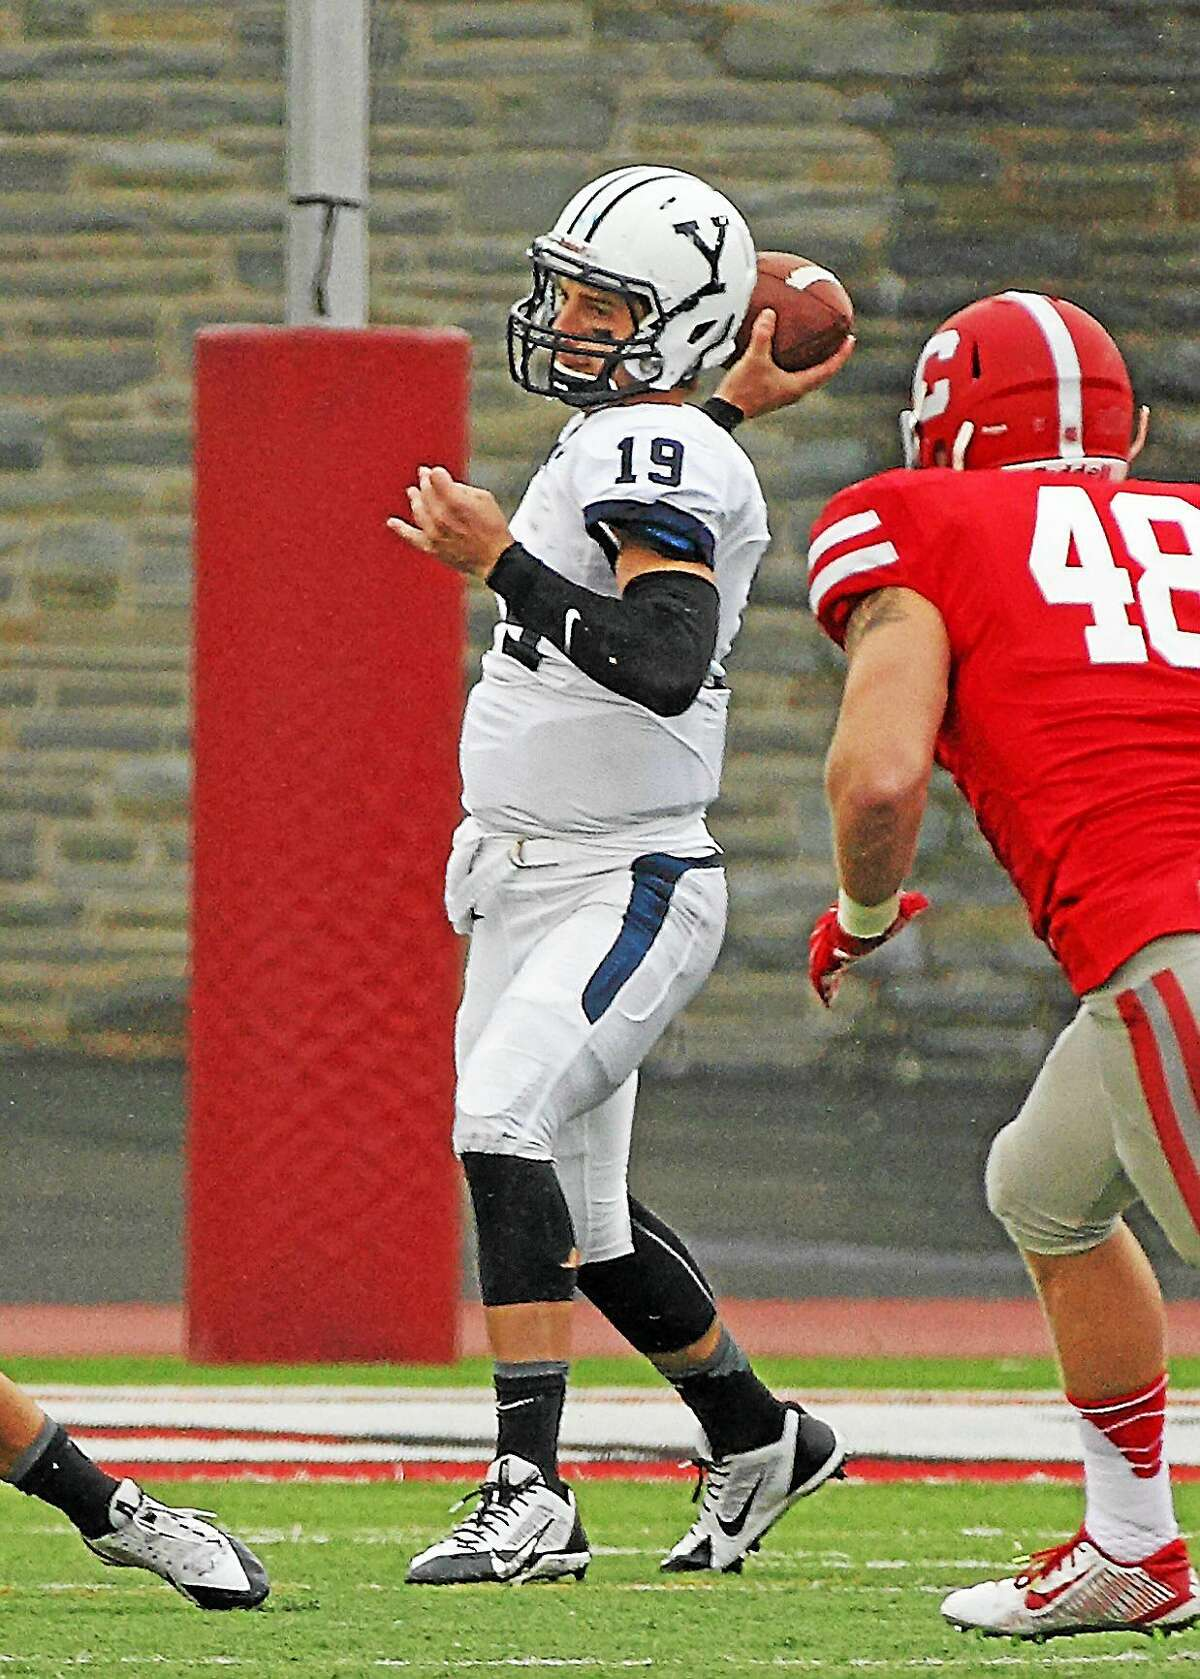 Yale quarterback Morgan Roberts threw for 312 yards and five touchdowns in the Bulldogs' 51-13 win over Cornell on Saturday afternoon in Ithaca, N.Y.